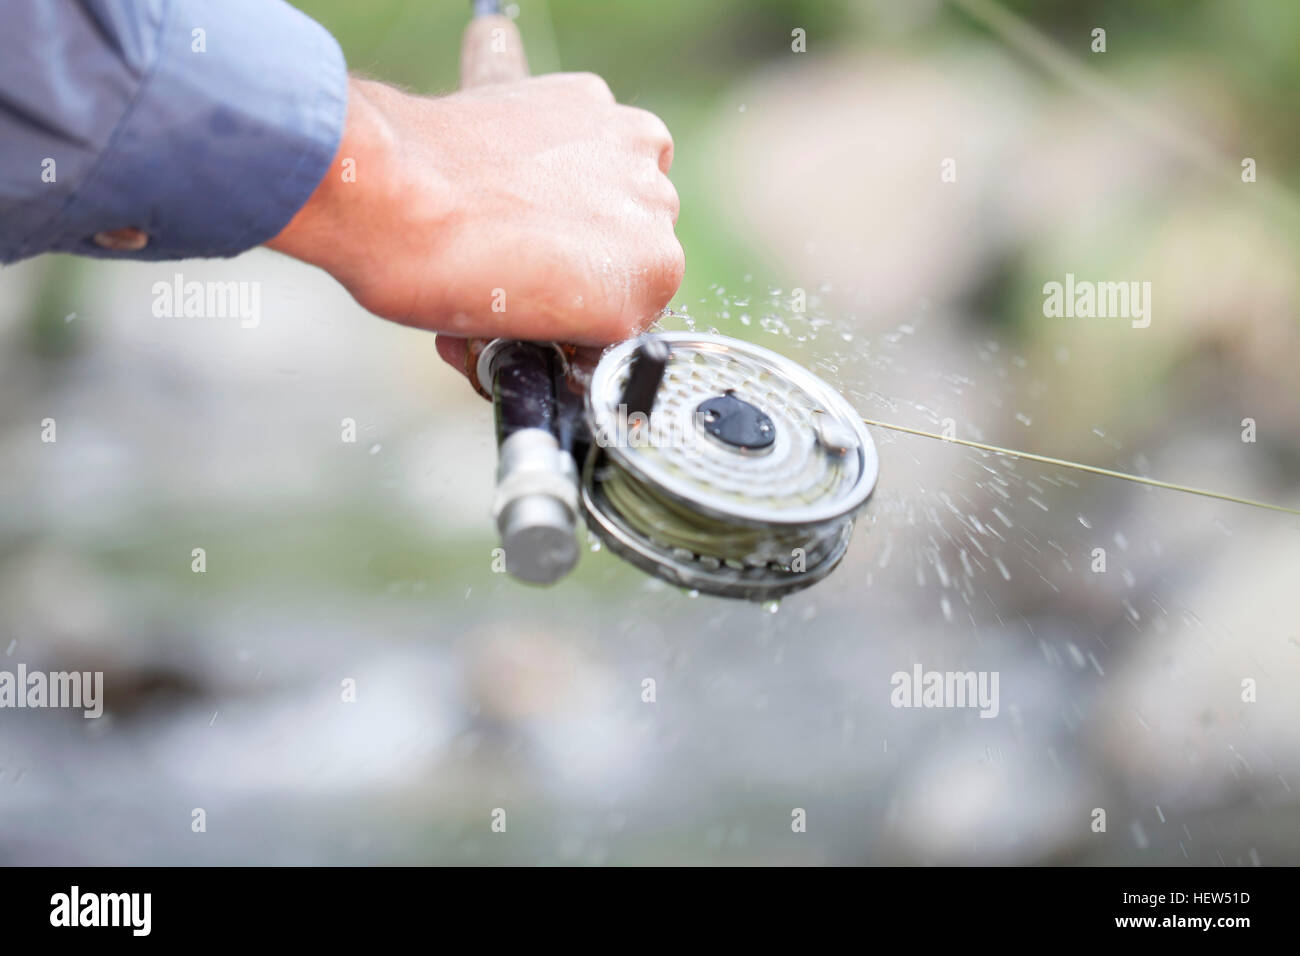 Fisherman\'s hand holding fishing rod with spinning reel Stock Photo ...